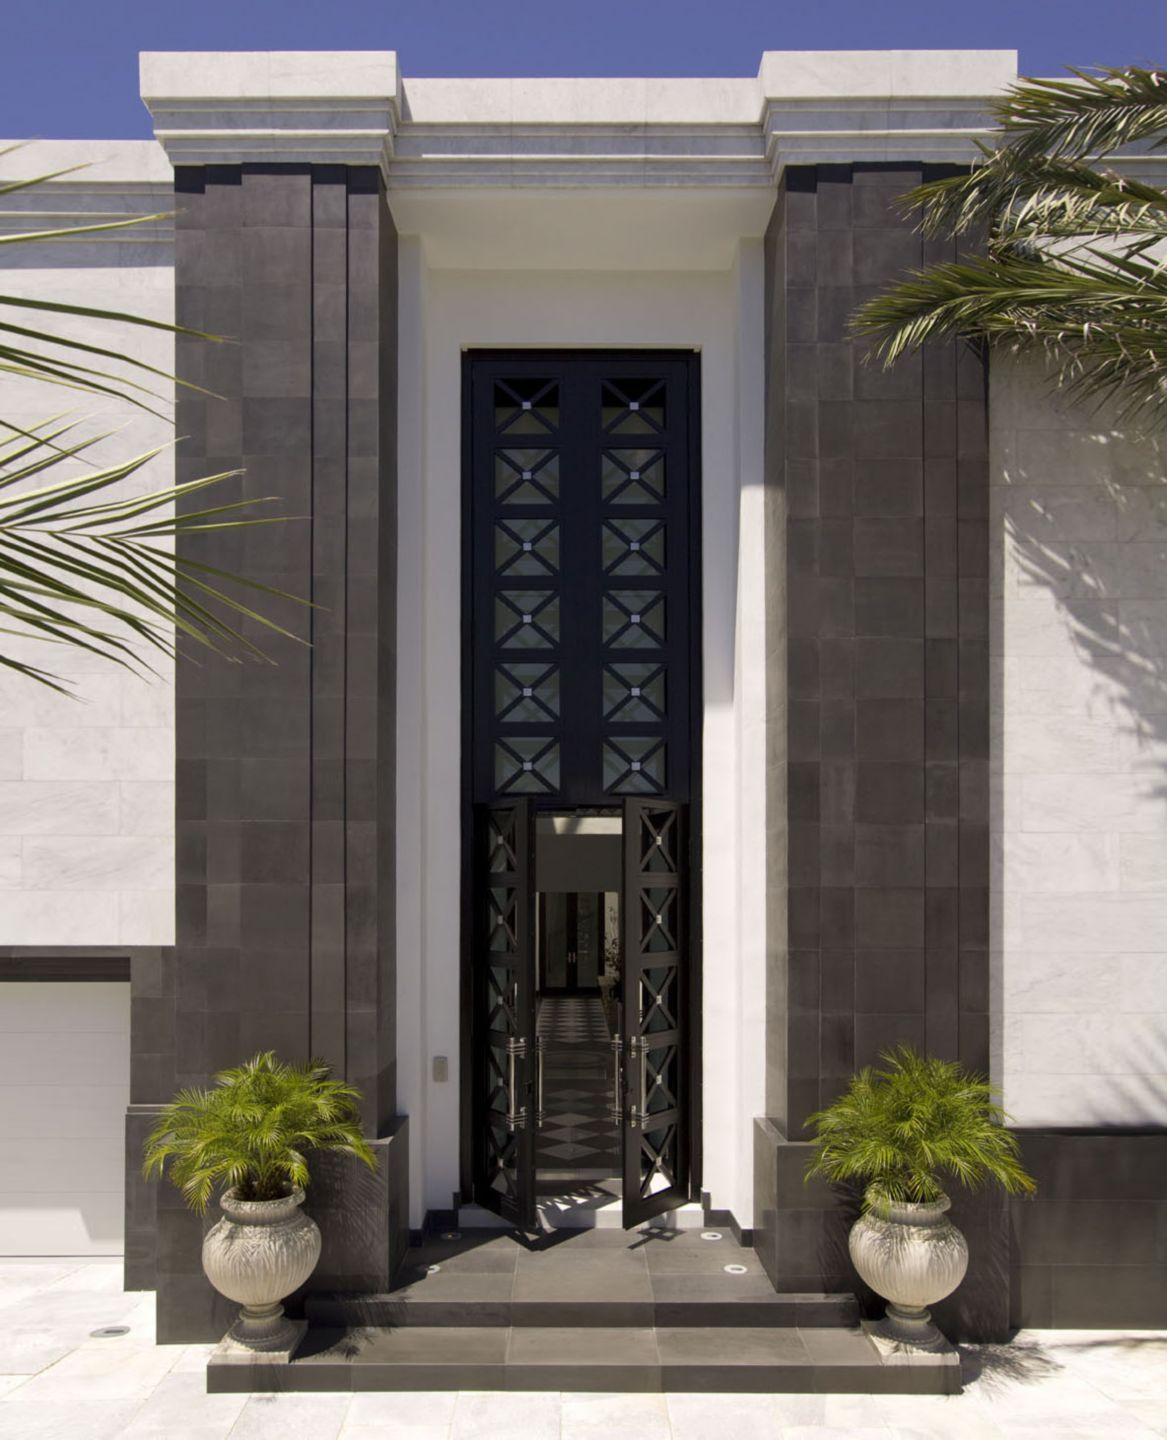 Midcentury Modern Exterior with Art Deco Doors